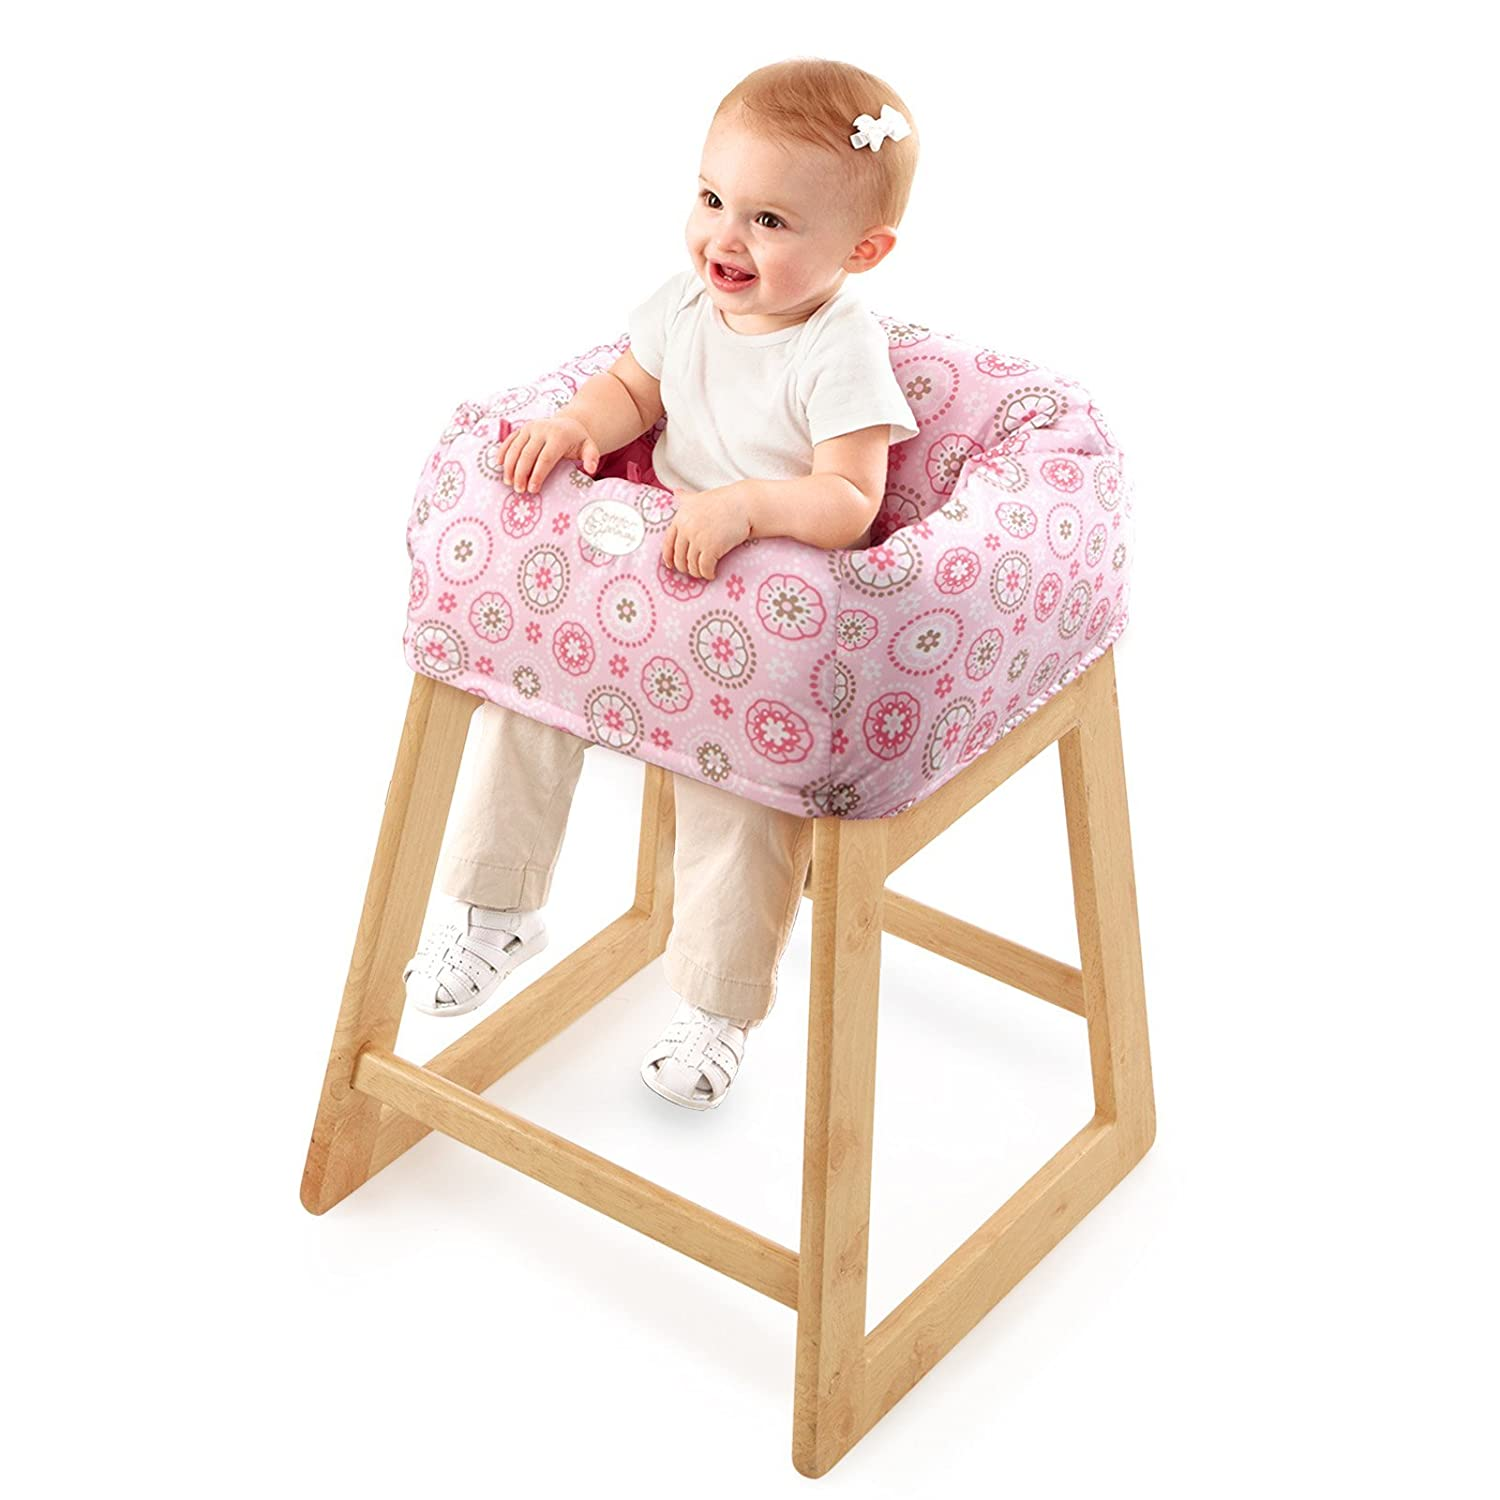 carters high chair cover office wheel base shopping cart portable baby toddler safe